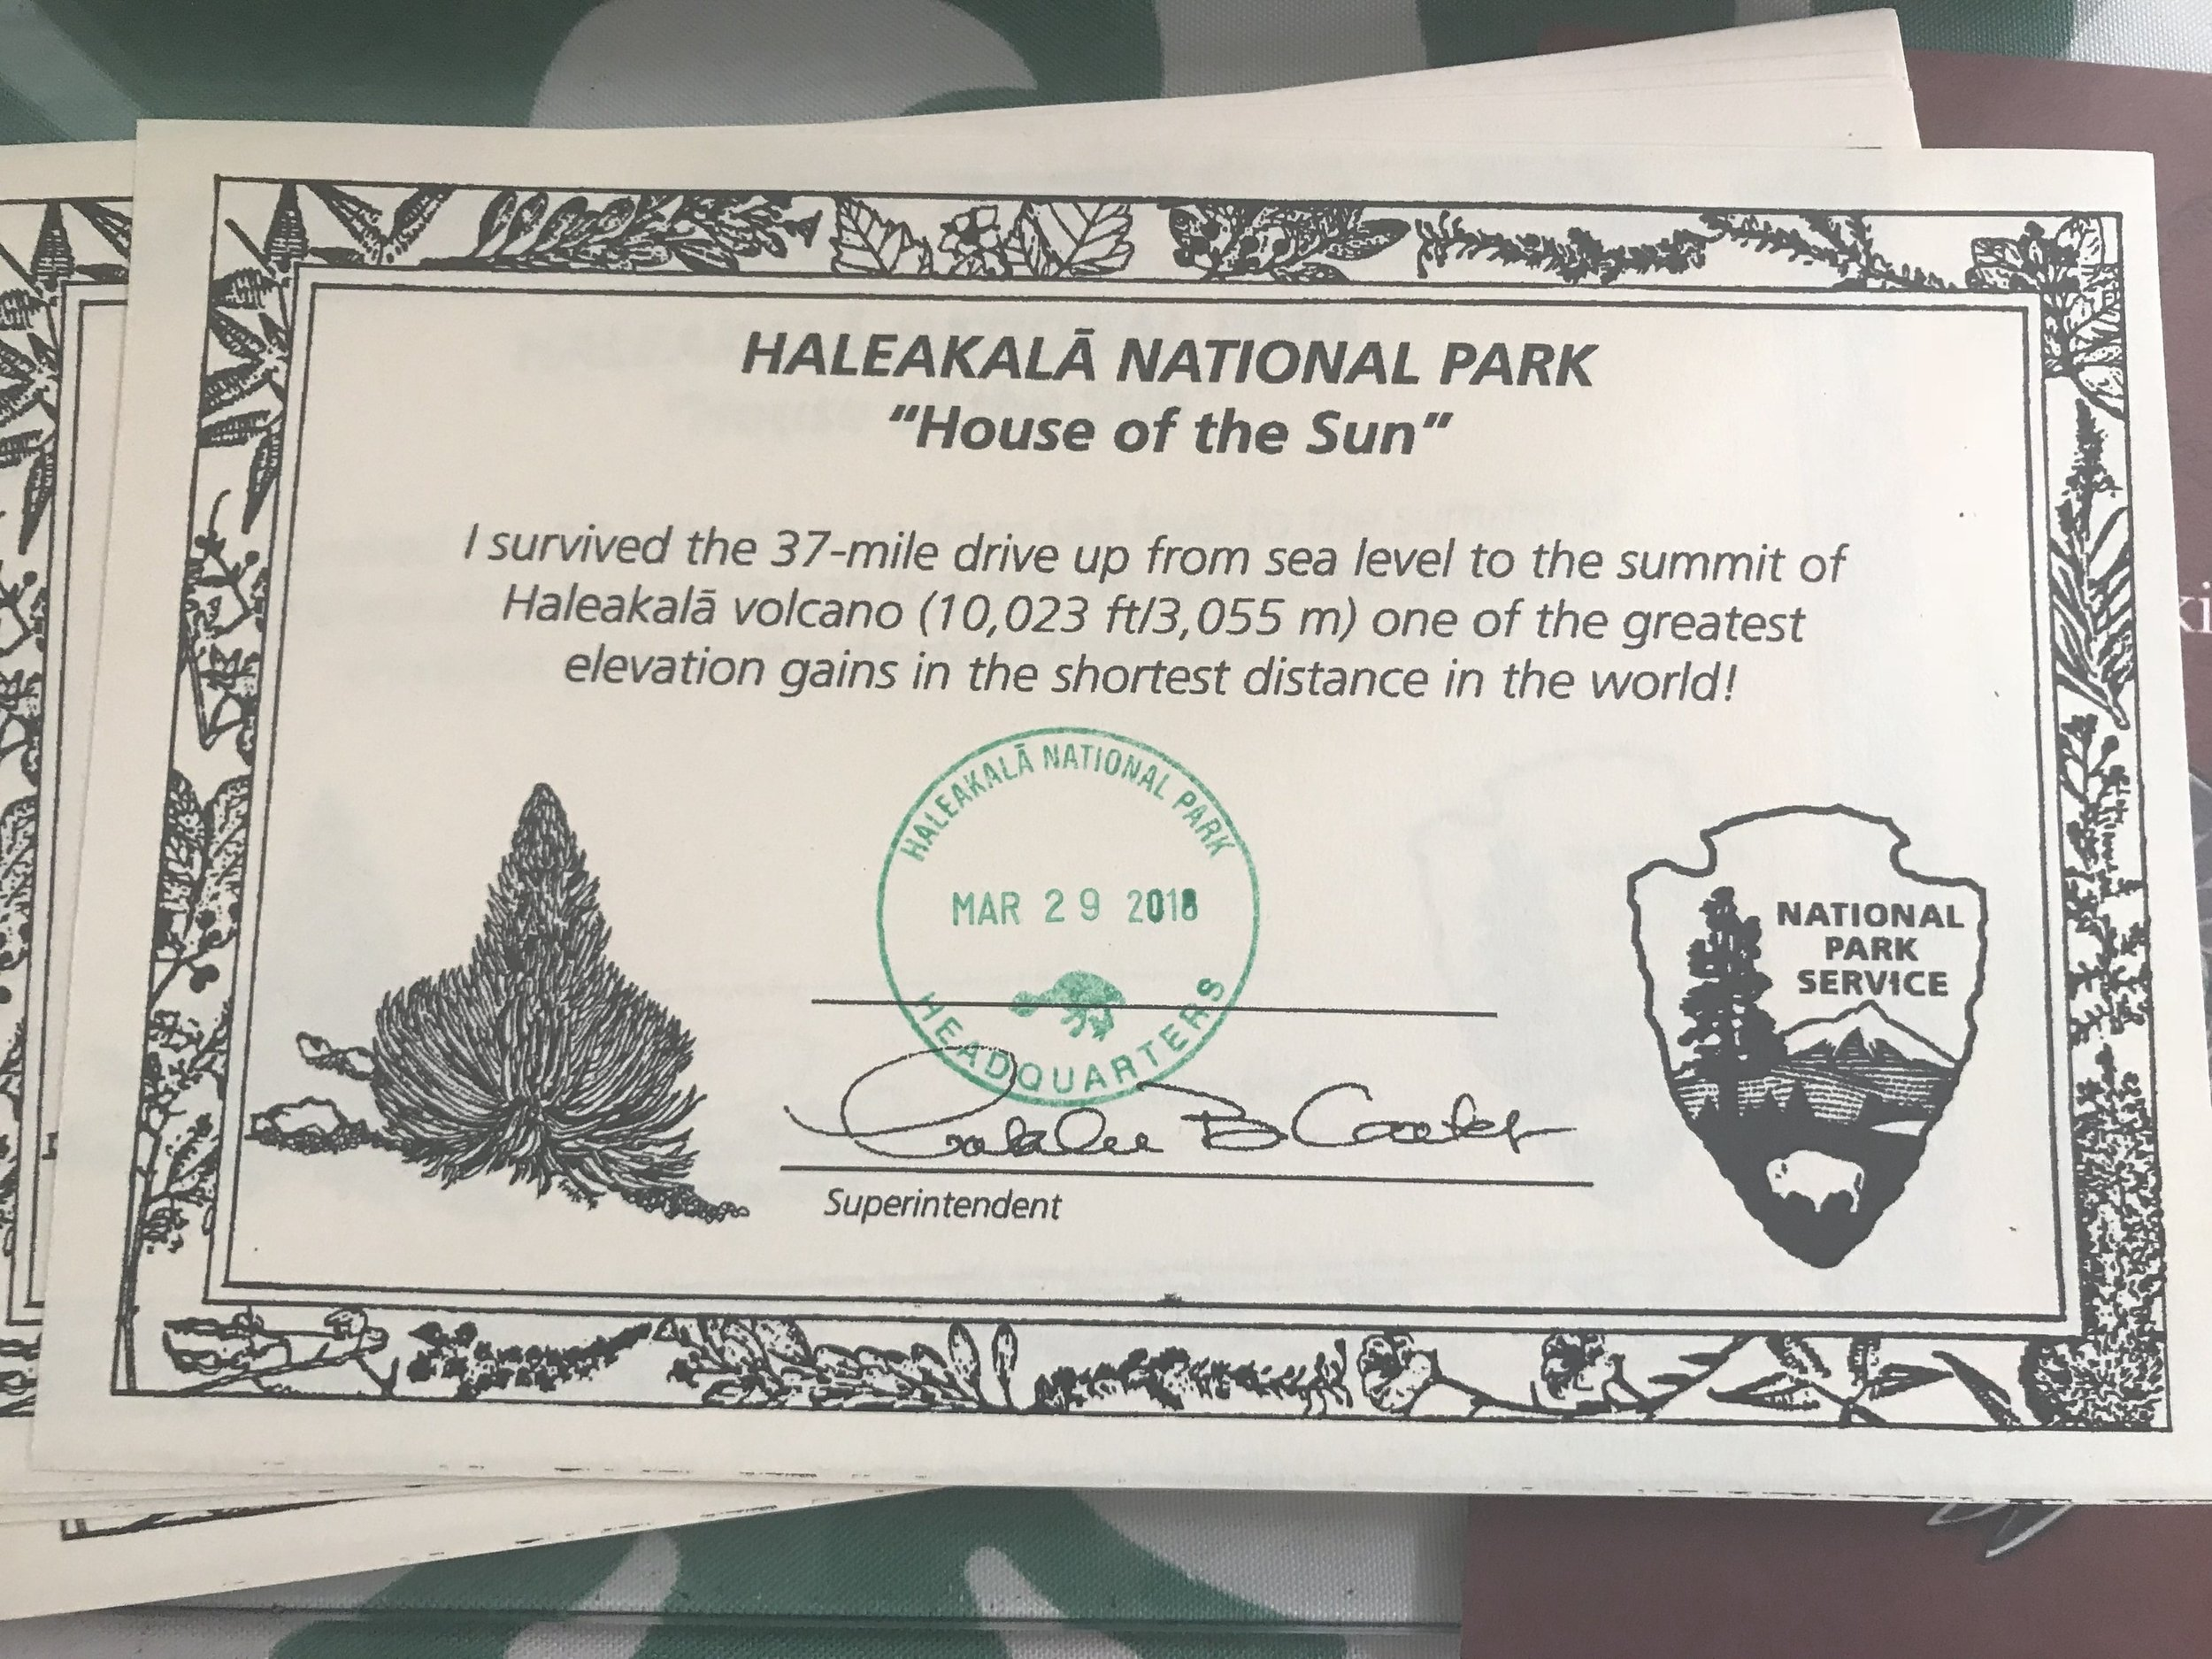 Certificate for those who went up to the summit of Haleakala at the visitor's center.